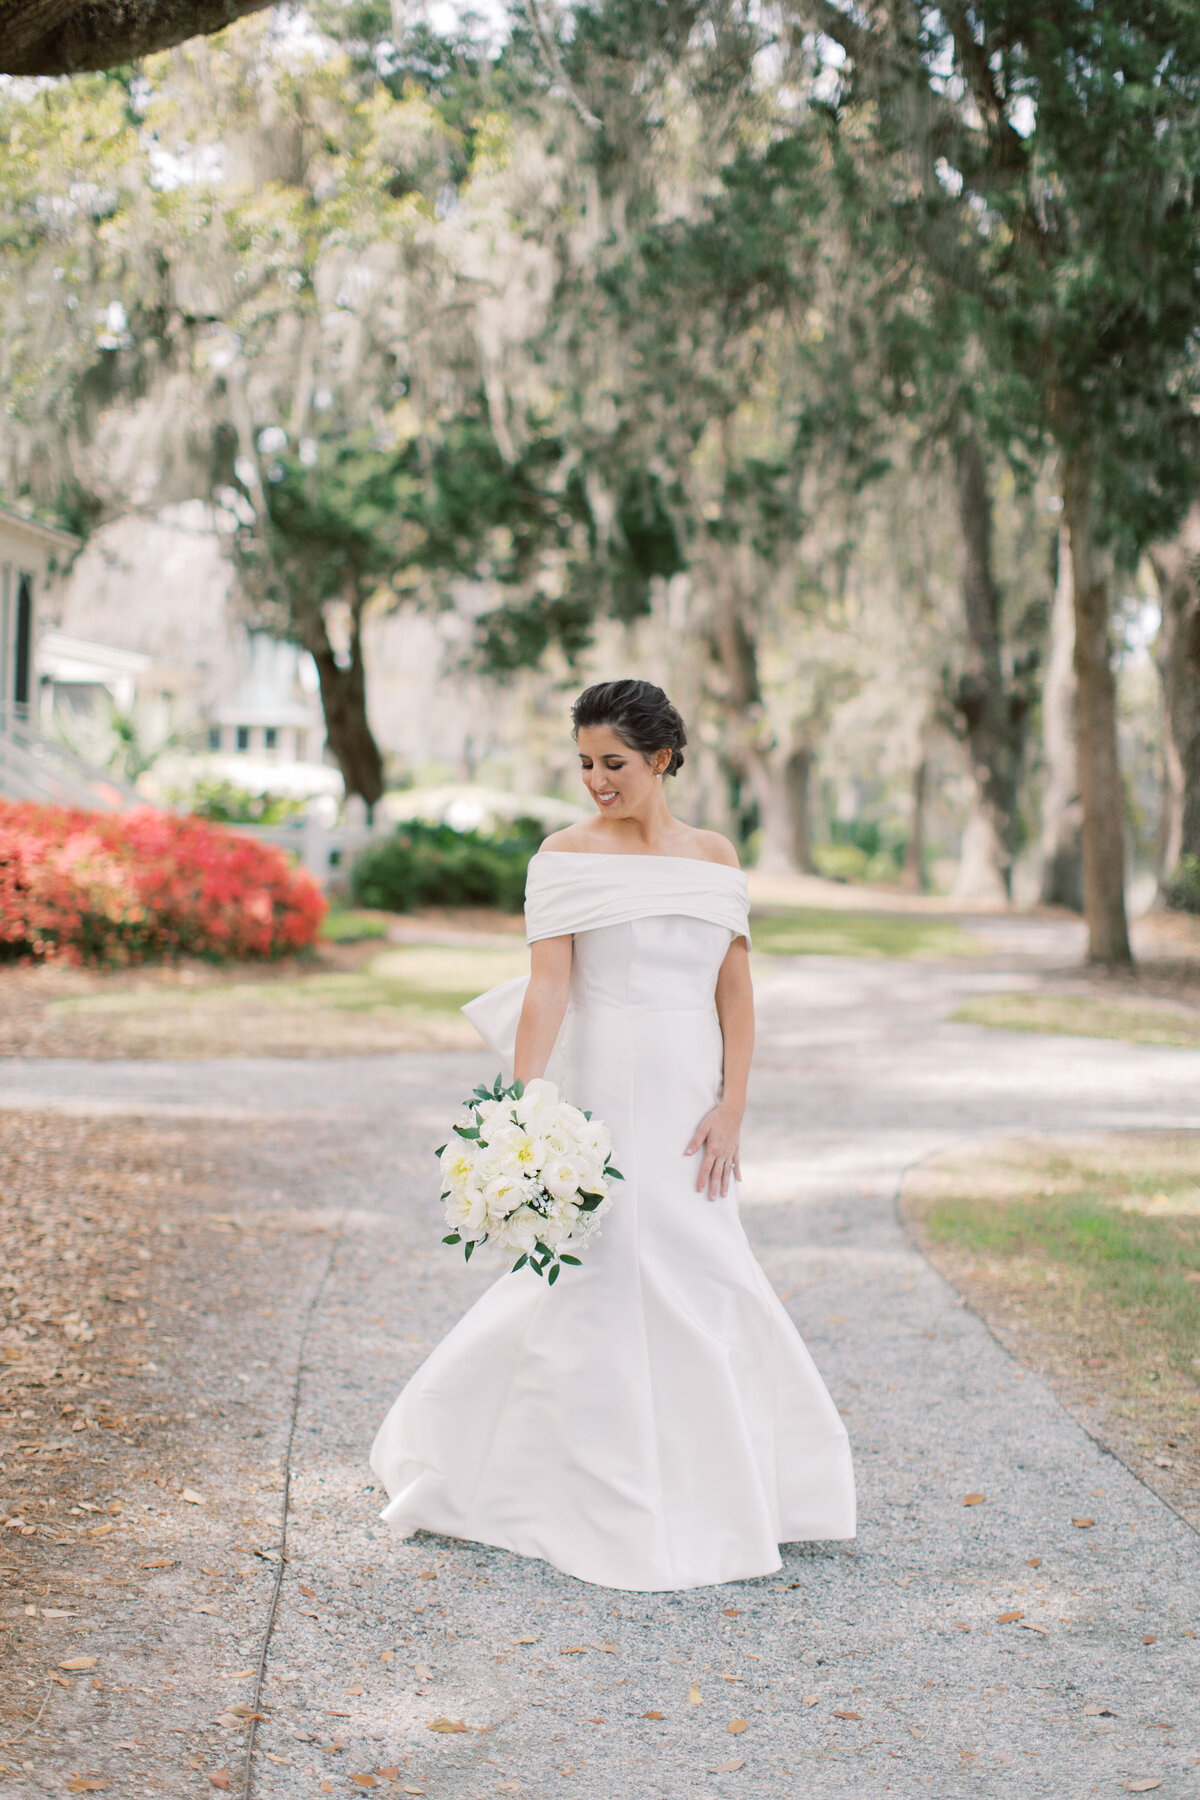 Powell_Oldfield_River_Club_Bluffton_South_Carolina_Beaufort_Savannah_Wedding_Jacksonville_Florida_Devon_Donnahoo_Photography_0198